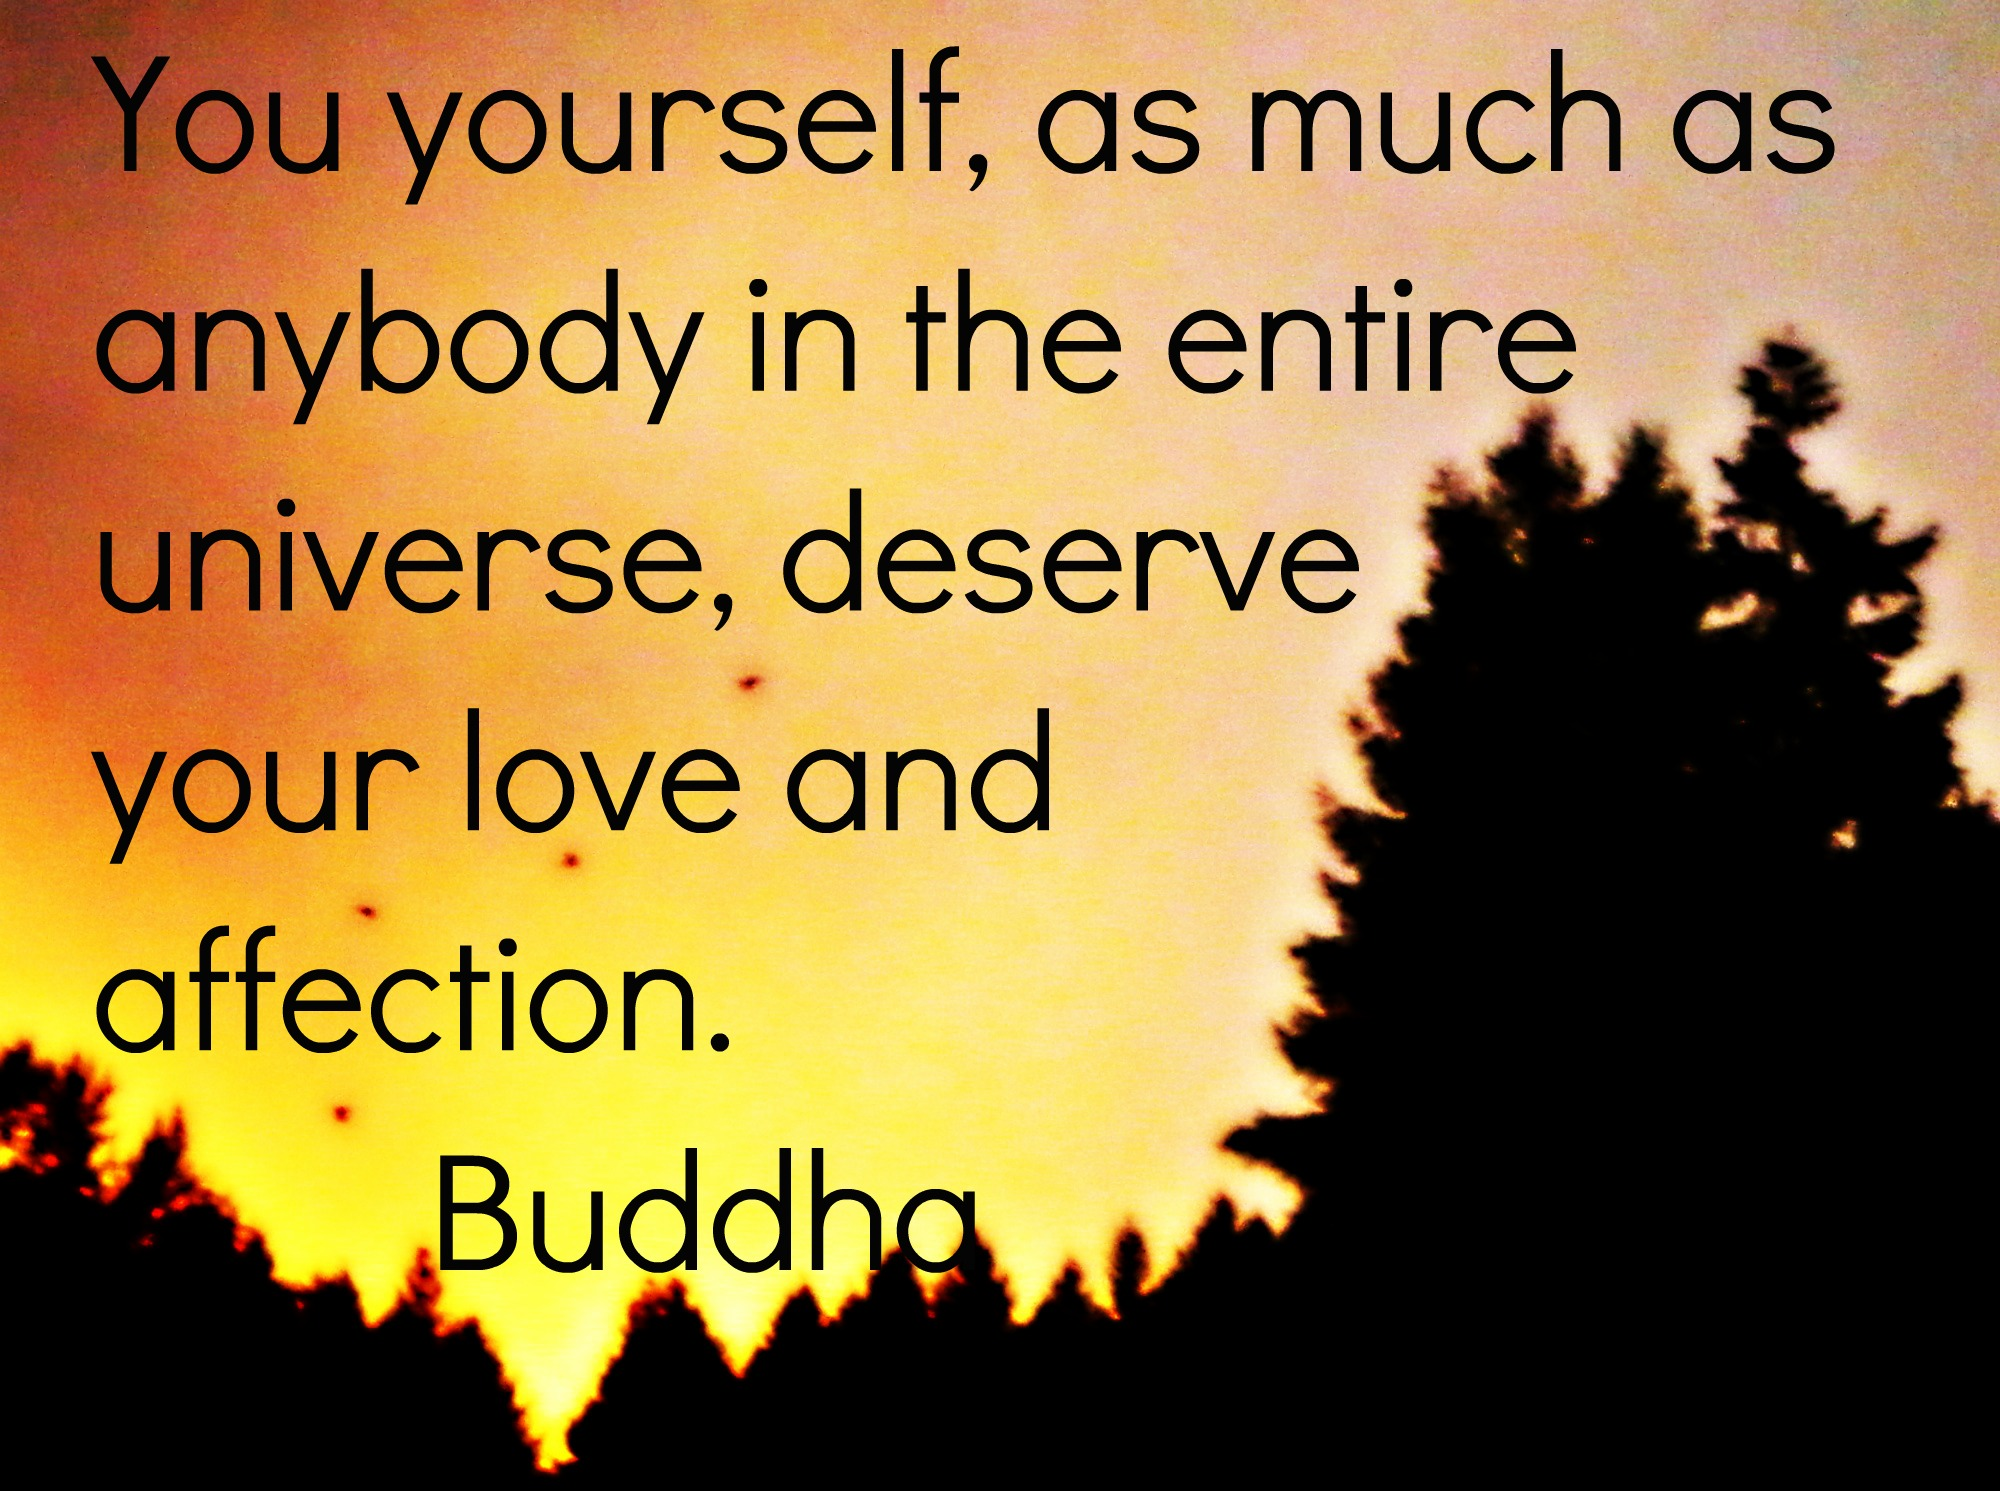 Buddha Quotes About Love Image  Buddha Quote 5  Superpower Wiki  Fandom Poweredwikia